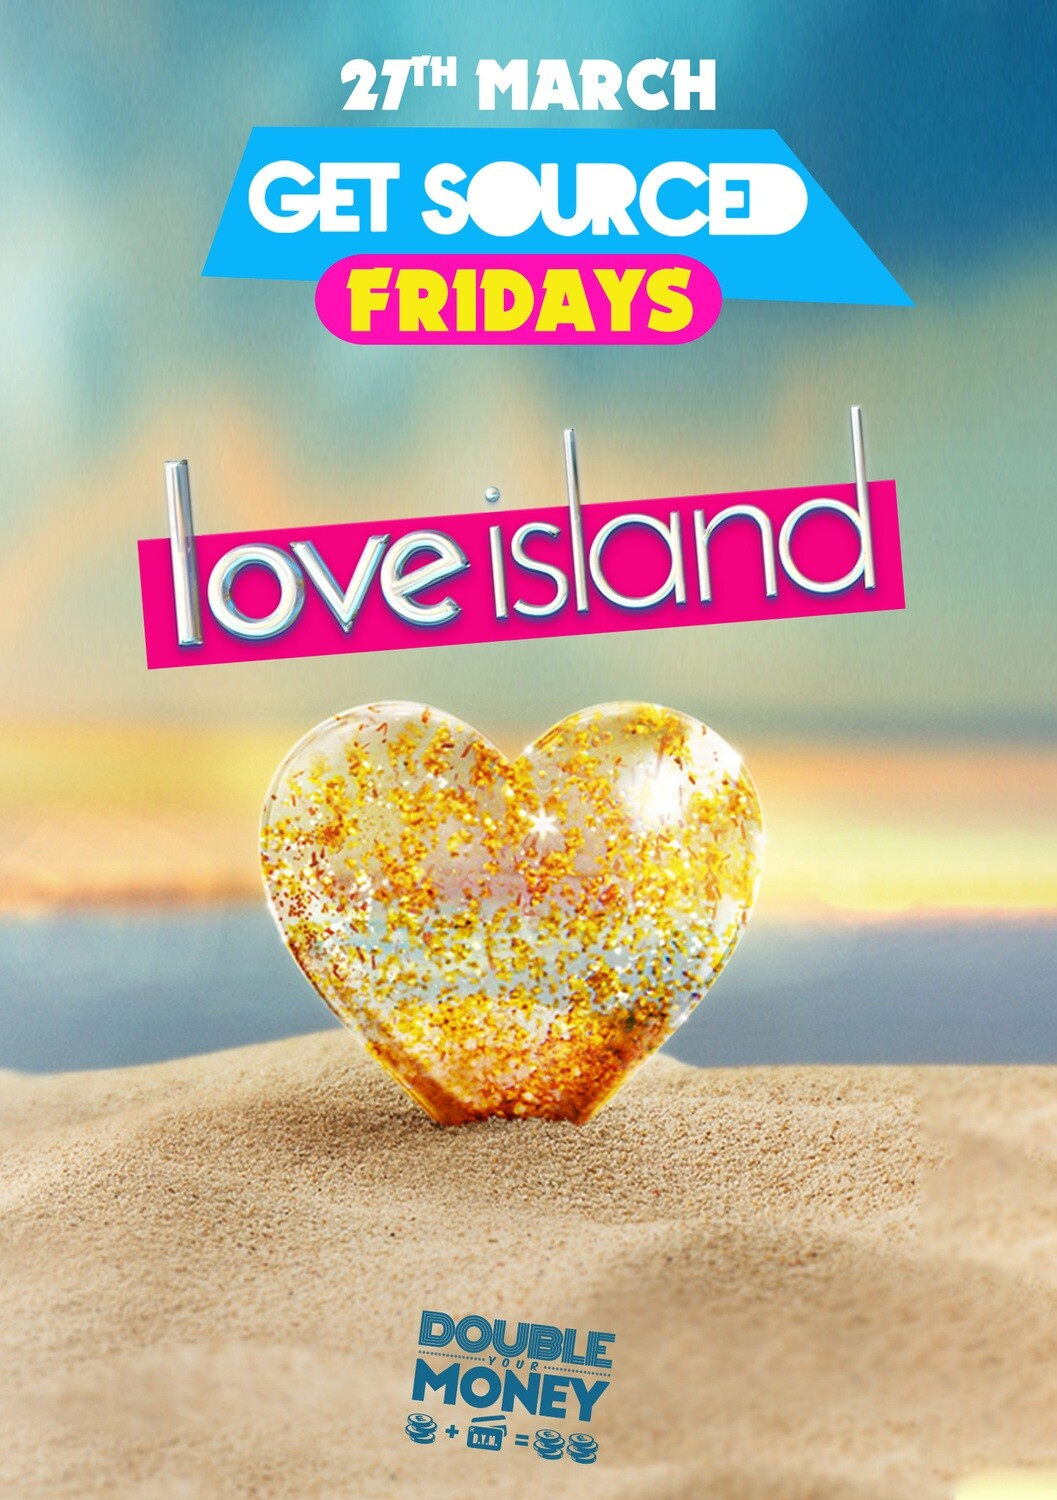 Friday 27th March 2020 - Get Sourced Fridays 'Love Island' ***TABLES £40***